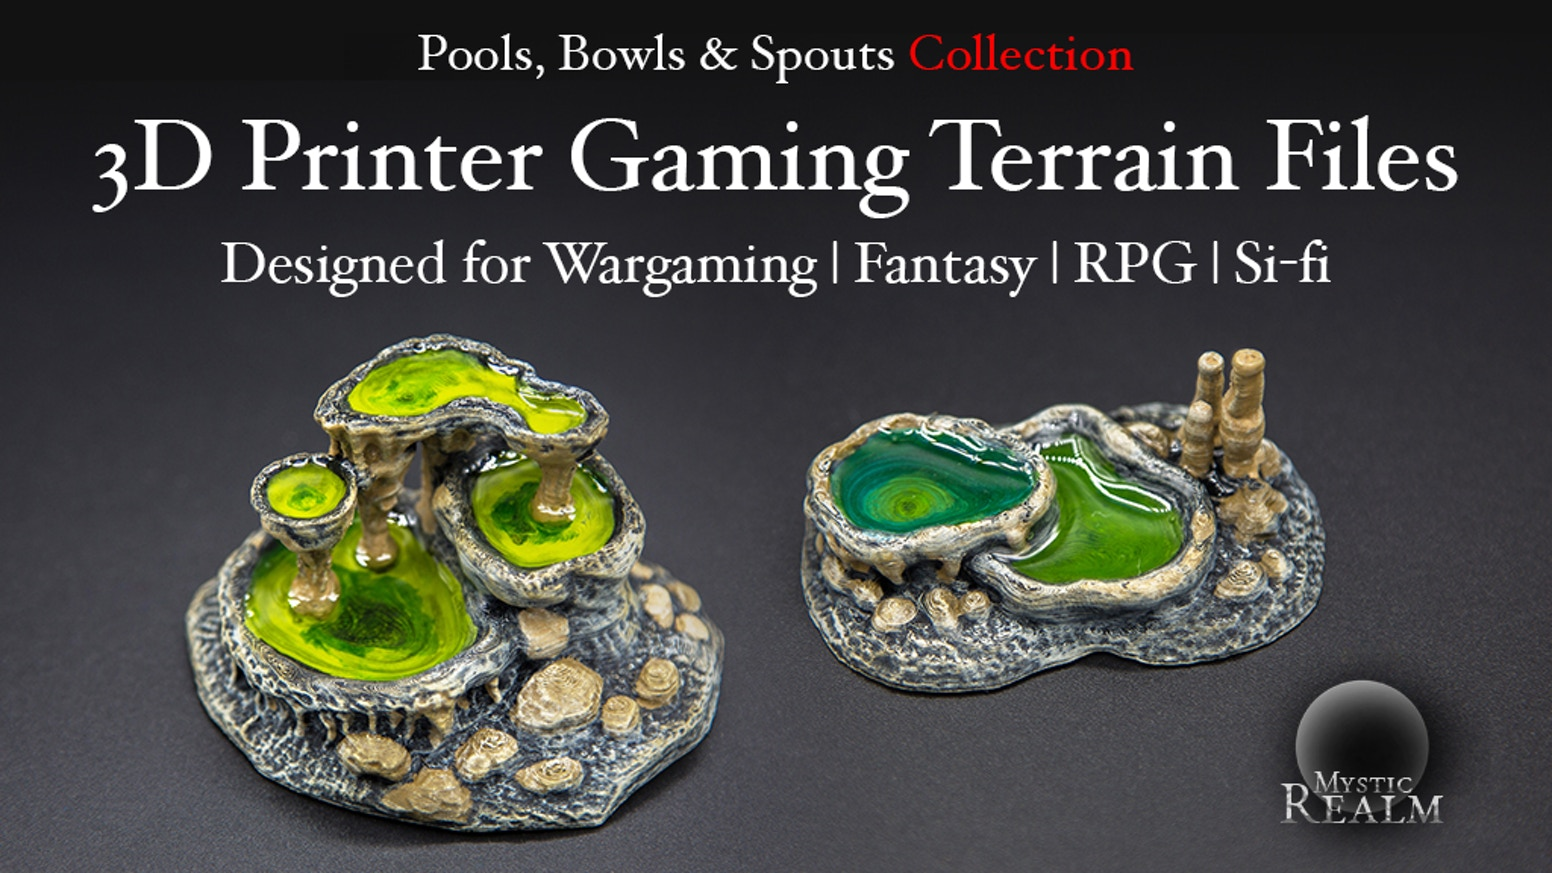 Printable terrain collection for 28mm/15mm table top gaming. Featuring Pools, Bowls & Spouts designs for both RPG & Sci-fi settings!